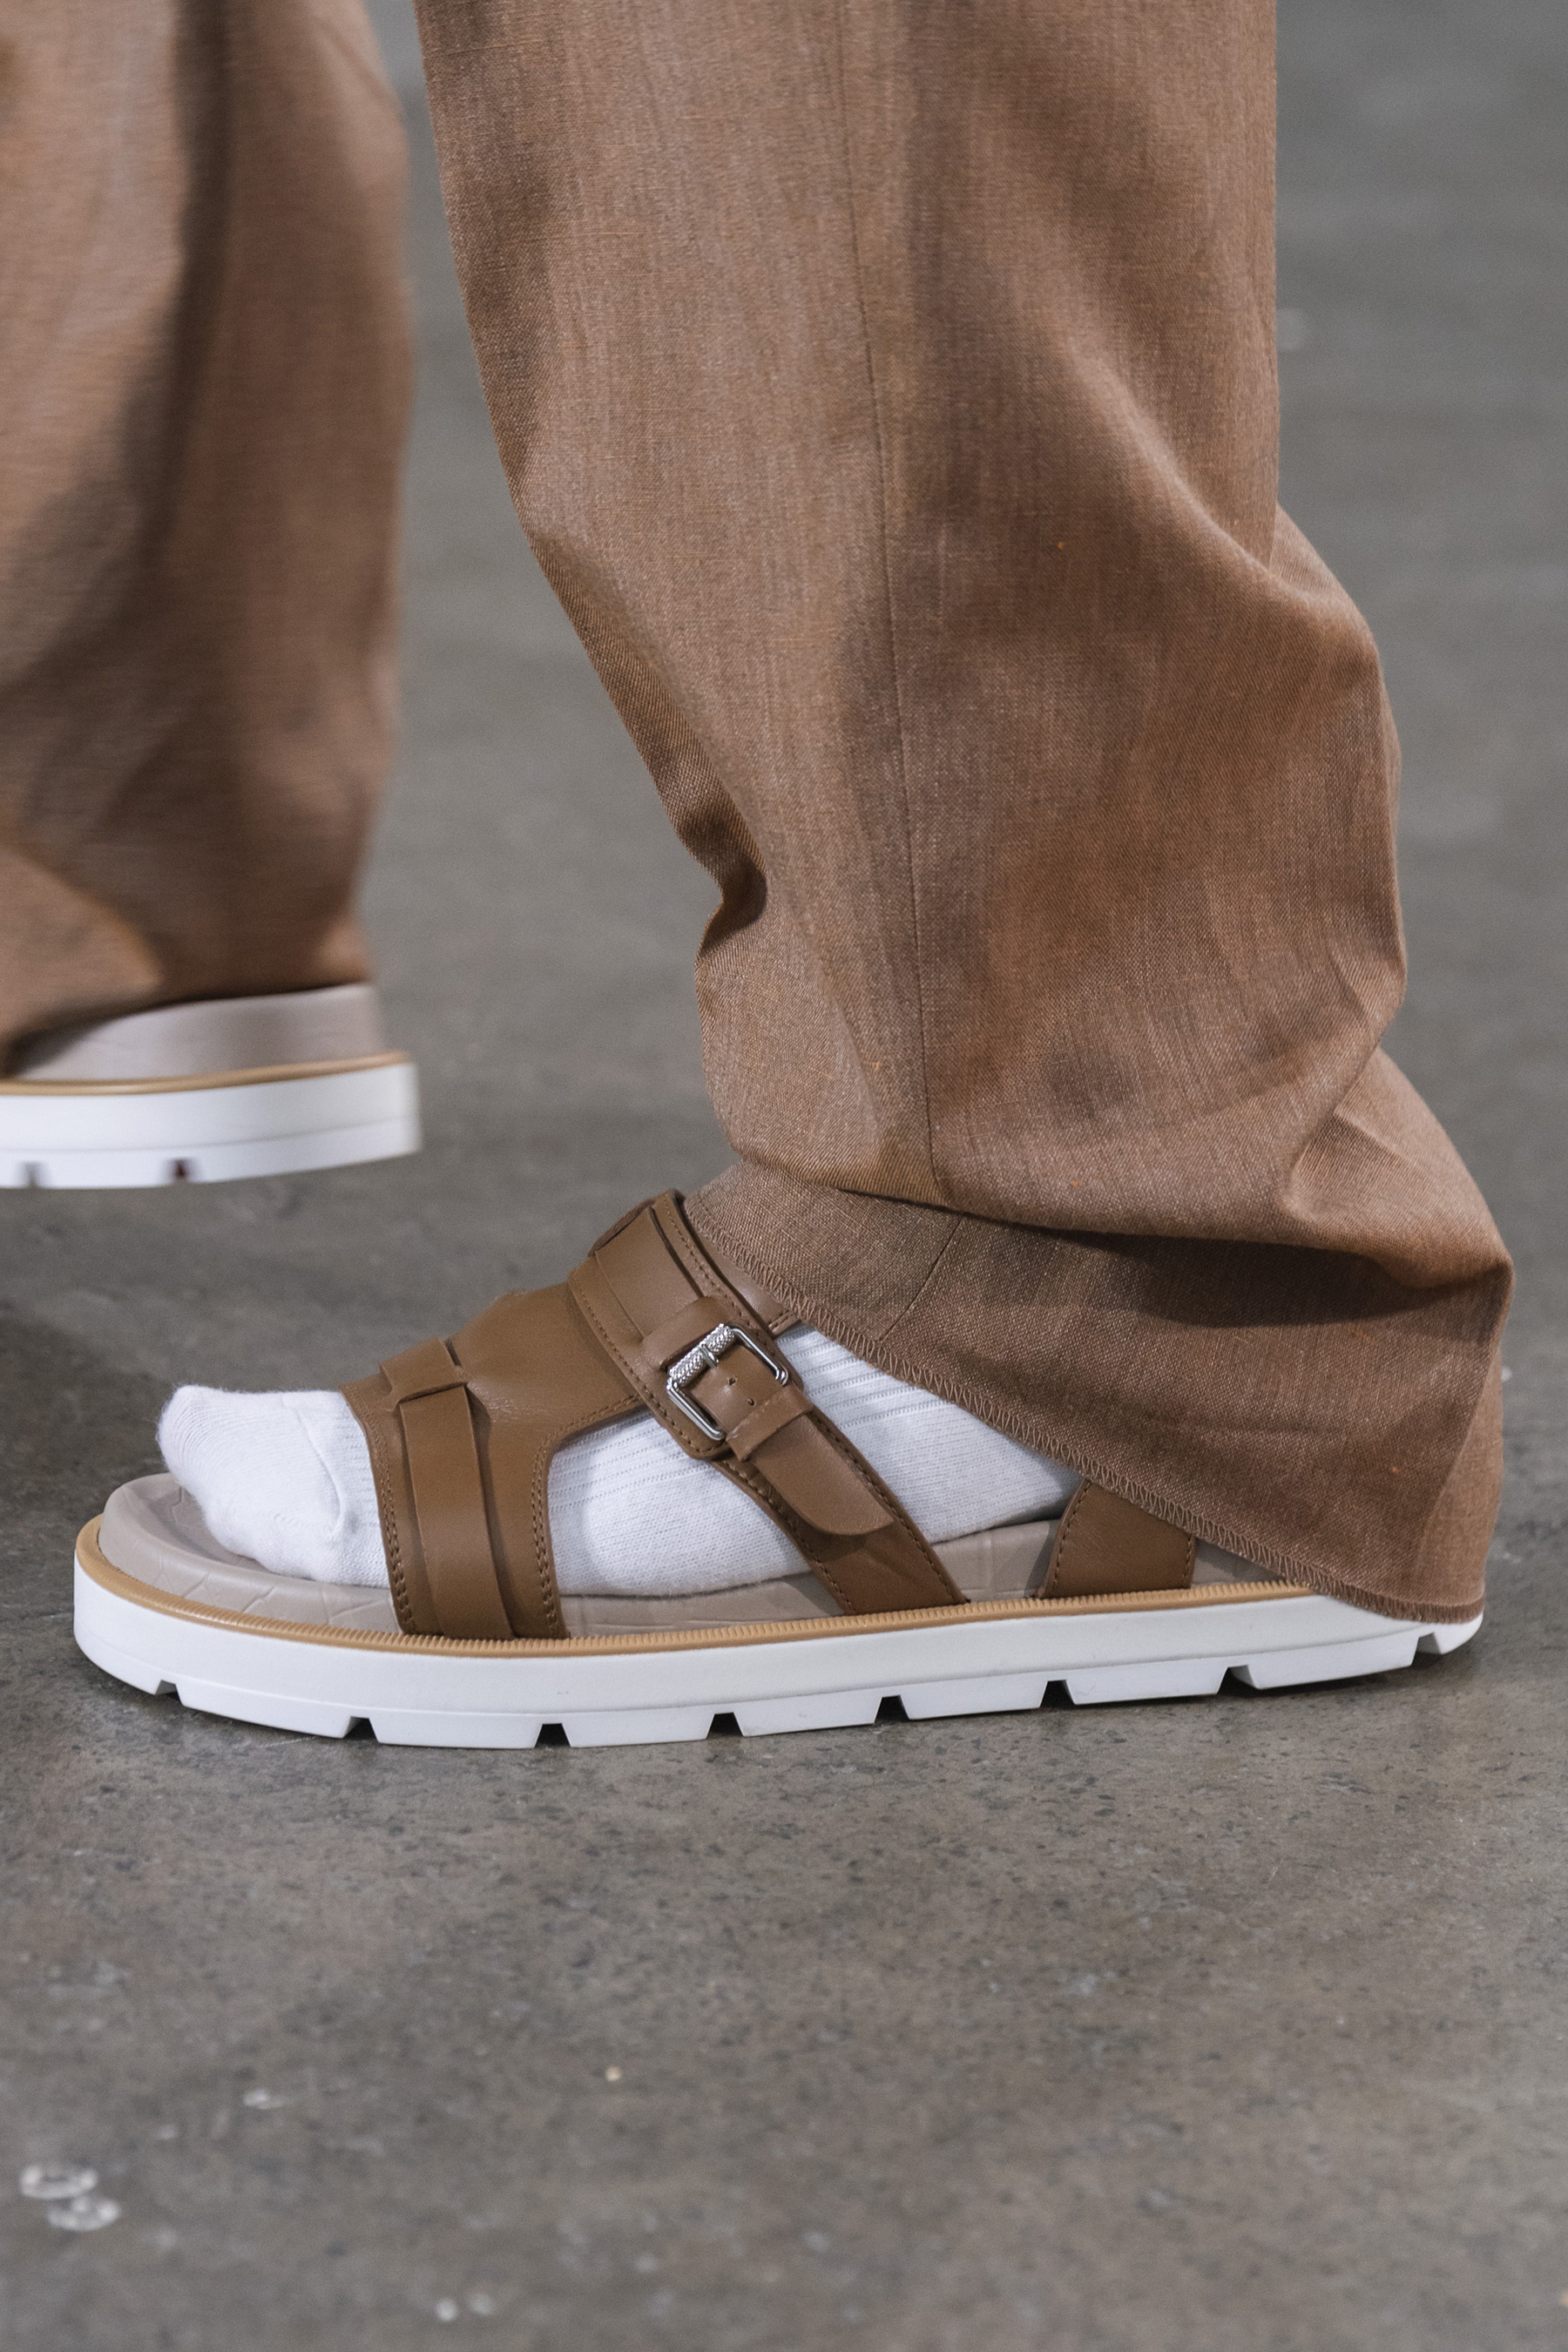 E. Tautz Spring 2020 Men's Fashion Show Details